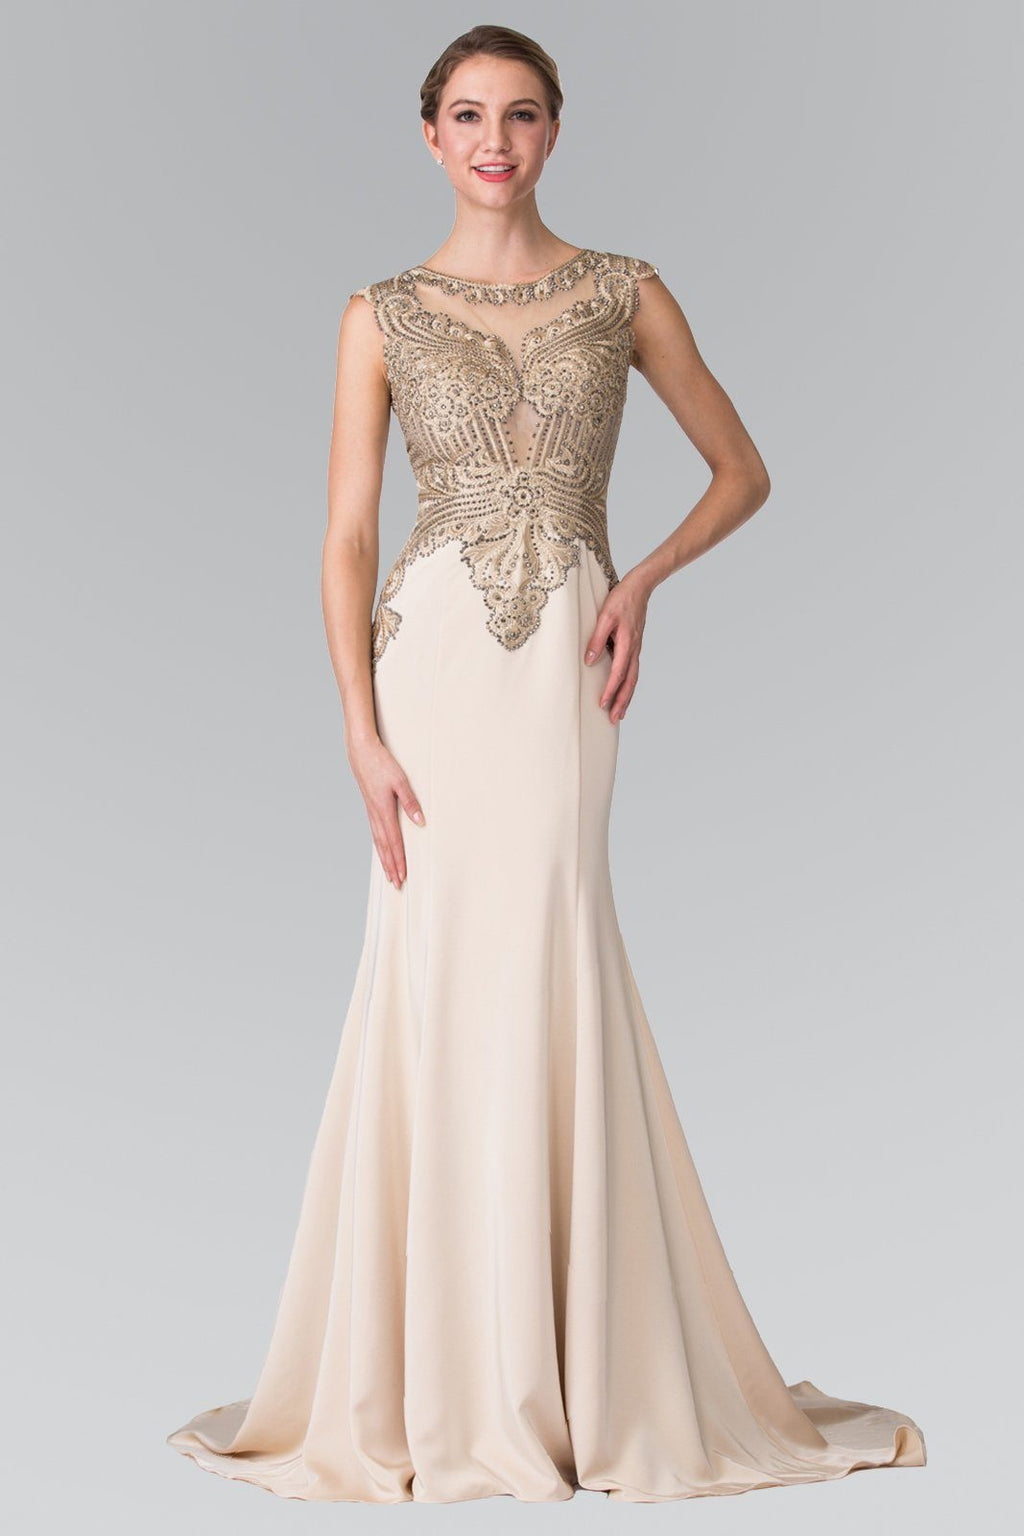 Champagne gold prom dress gls 1461-Simply Fab Dress